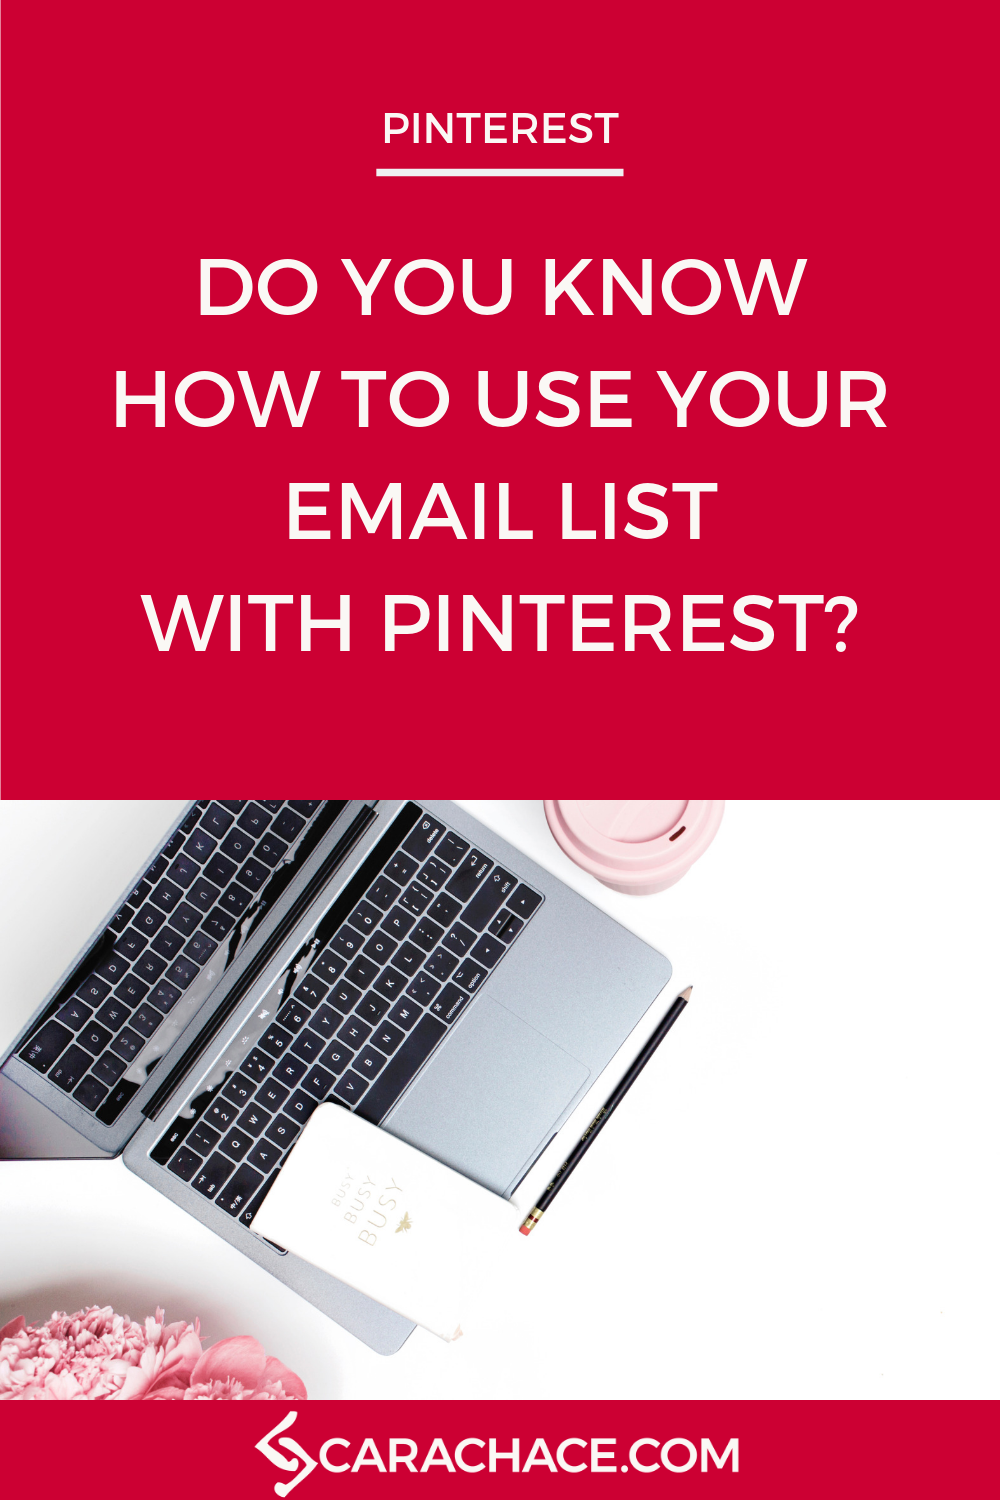 Email List with Pinterest Pin 1.png